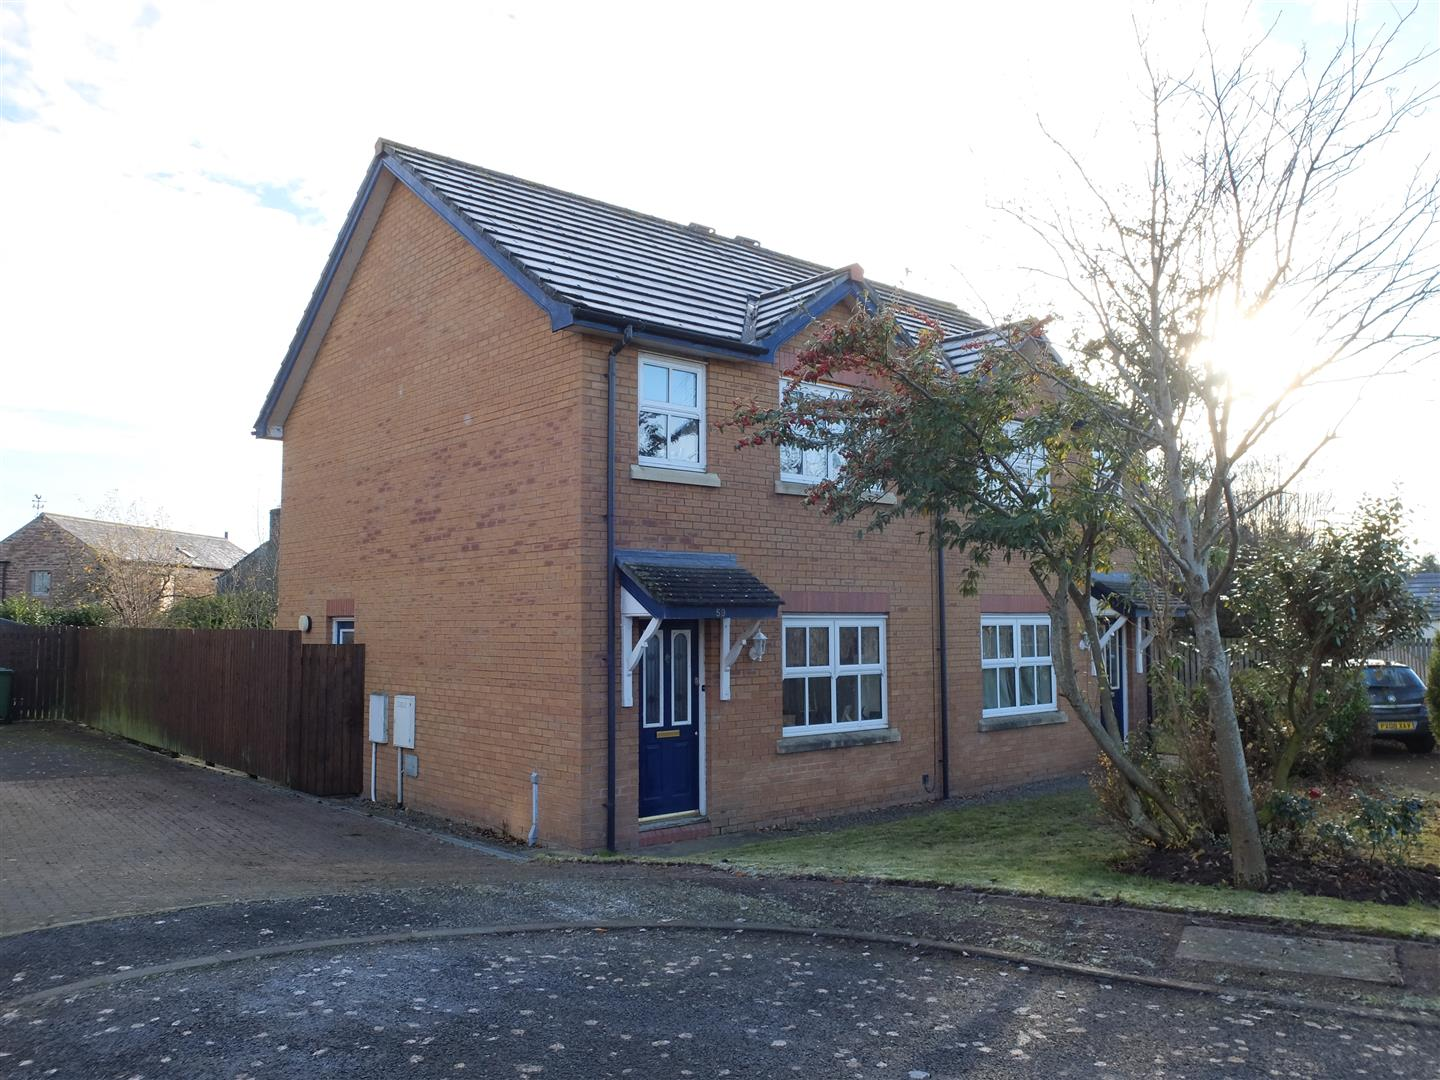 59 The Paddocks Carlisle 3 Bedrooms House - Semi-Detached For Sale